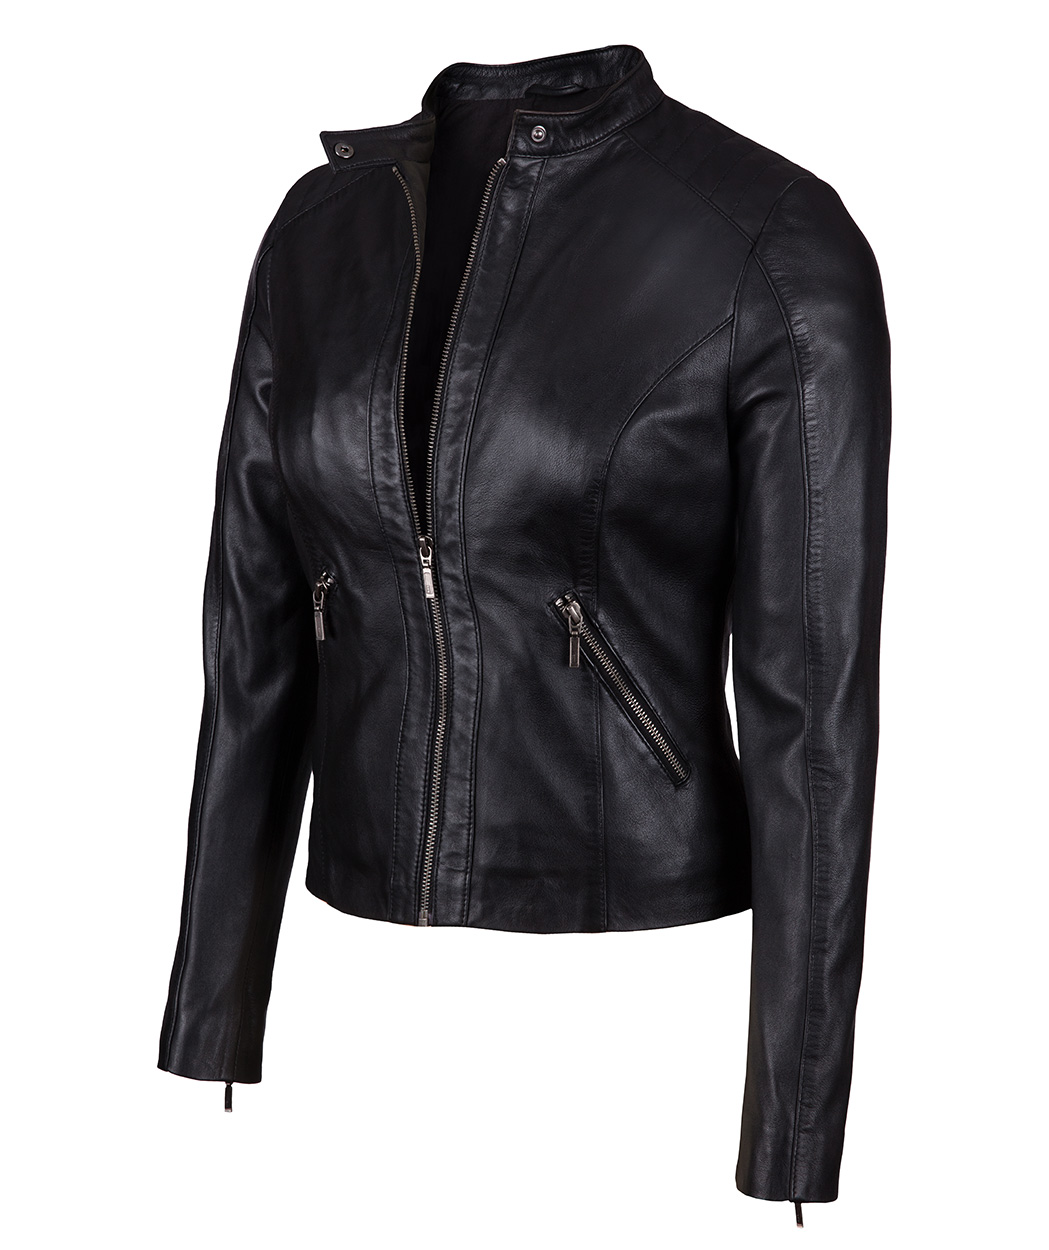 Designer Women Leather Jackets - Soft Real Genuine Lambskin Leather